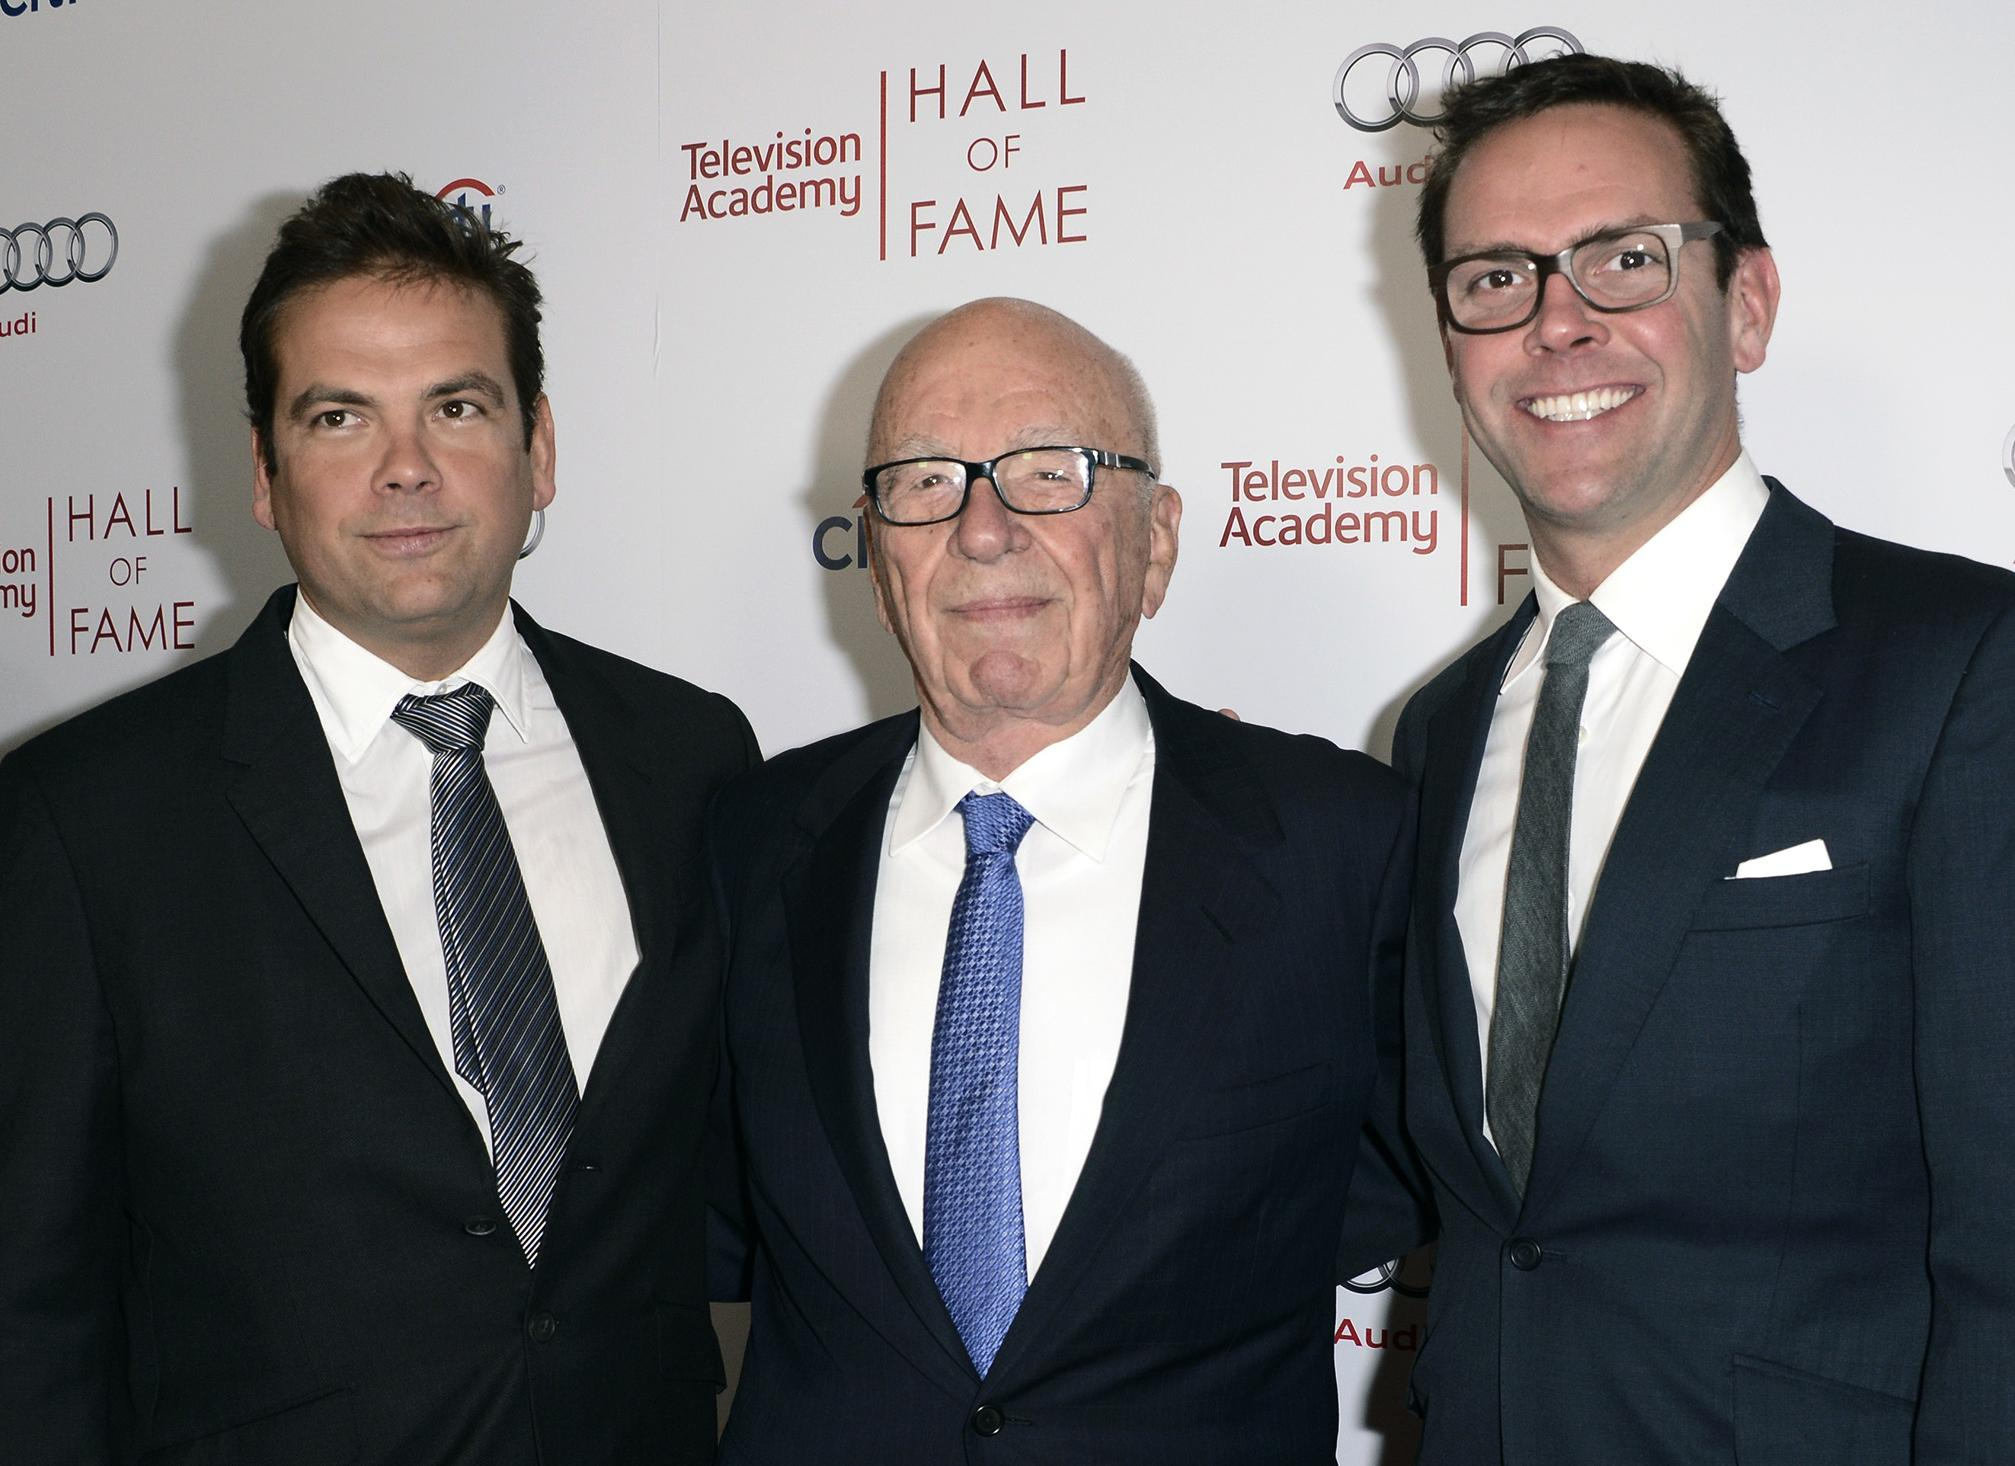 Fox chief Lachlan Murdoch: 'We're all poorer' for lack of civil debate in this country